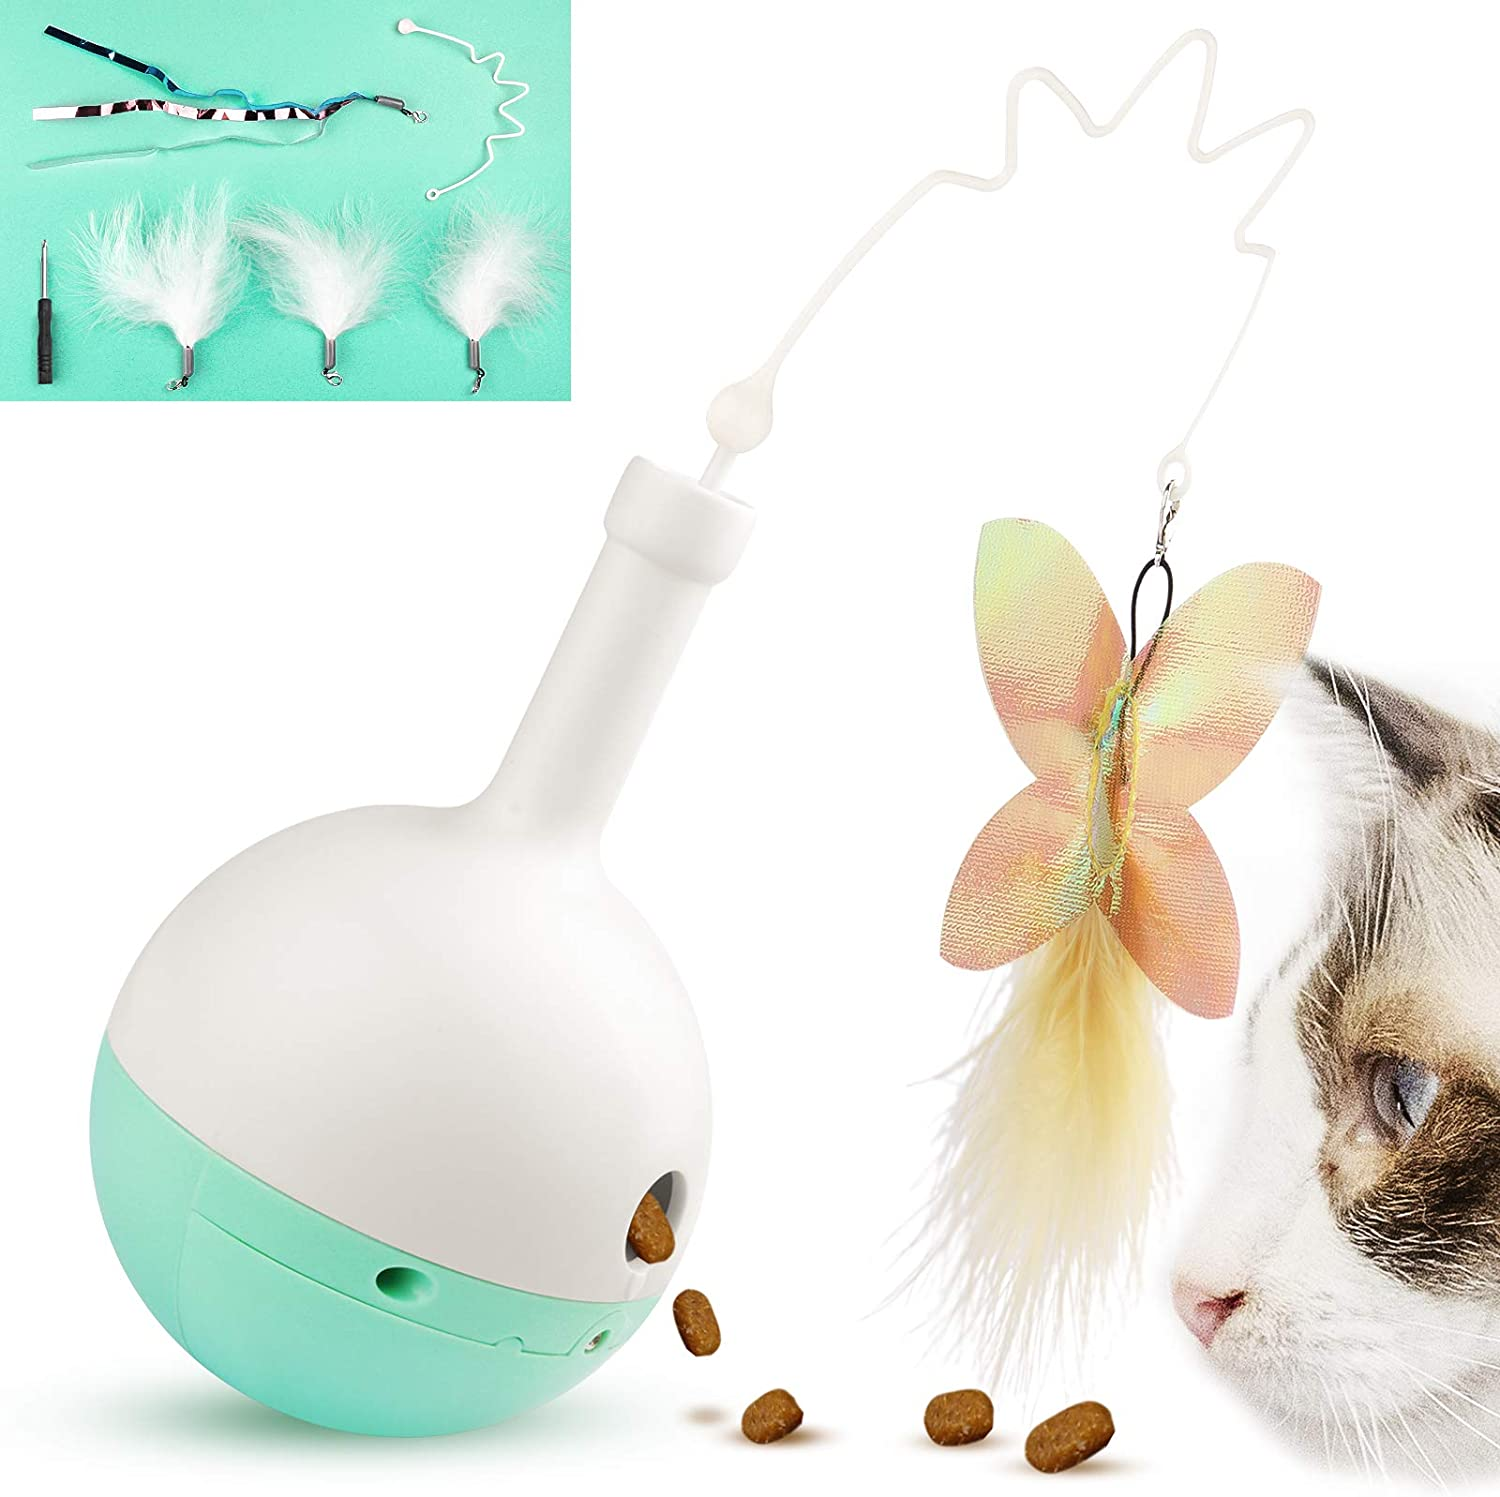 Melonva Interactive Cat Treat Dispenser Toy, 4 Refills Cat Treat Toy with Butterfly and Feather, Wobbly Kitty Toys, Automatic Bottle Teaser with Built-in Food Cabin